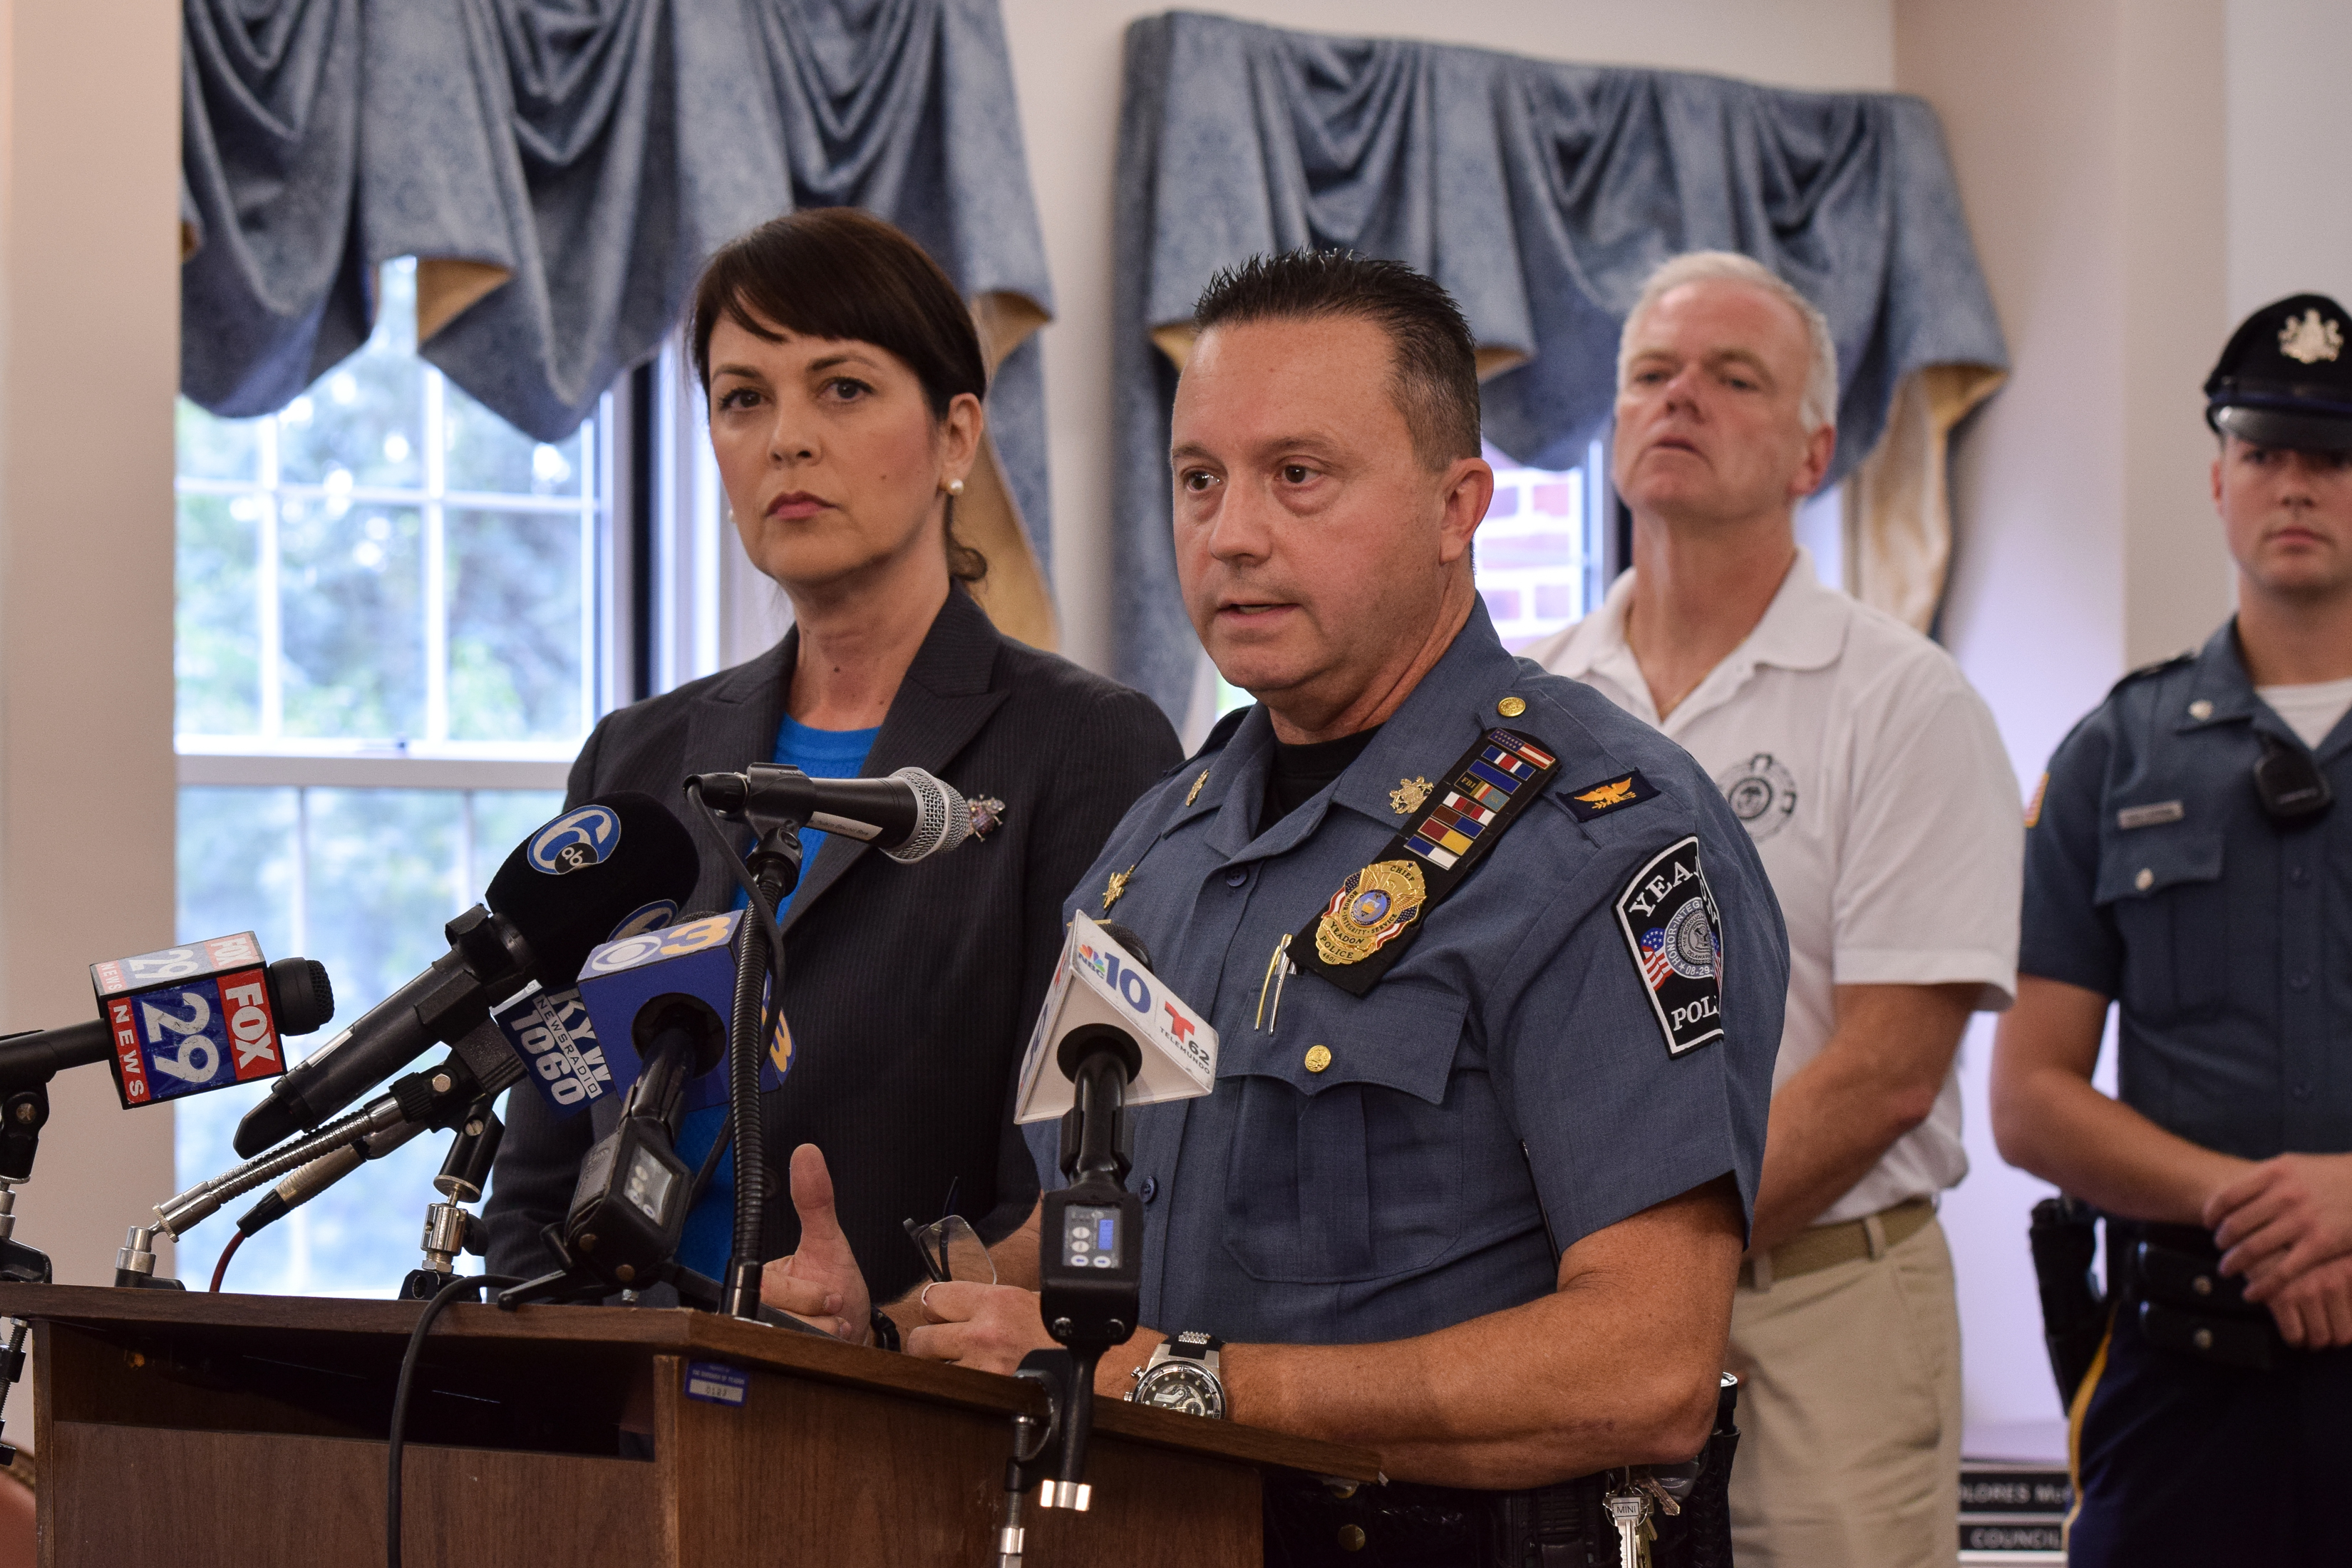 Yeardon Police Chief Anthony Paparo (right) addresses announced criminal charges against Robert Coult III on Monday alongside Delaware County District Attorney Katayoun Copeland.